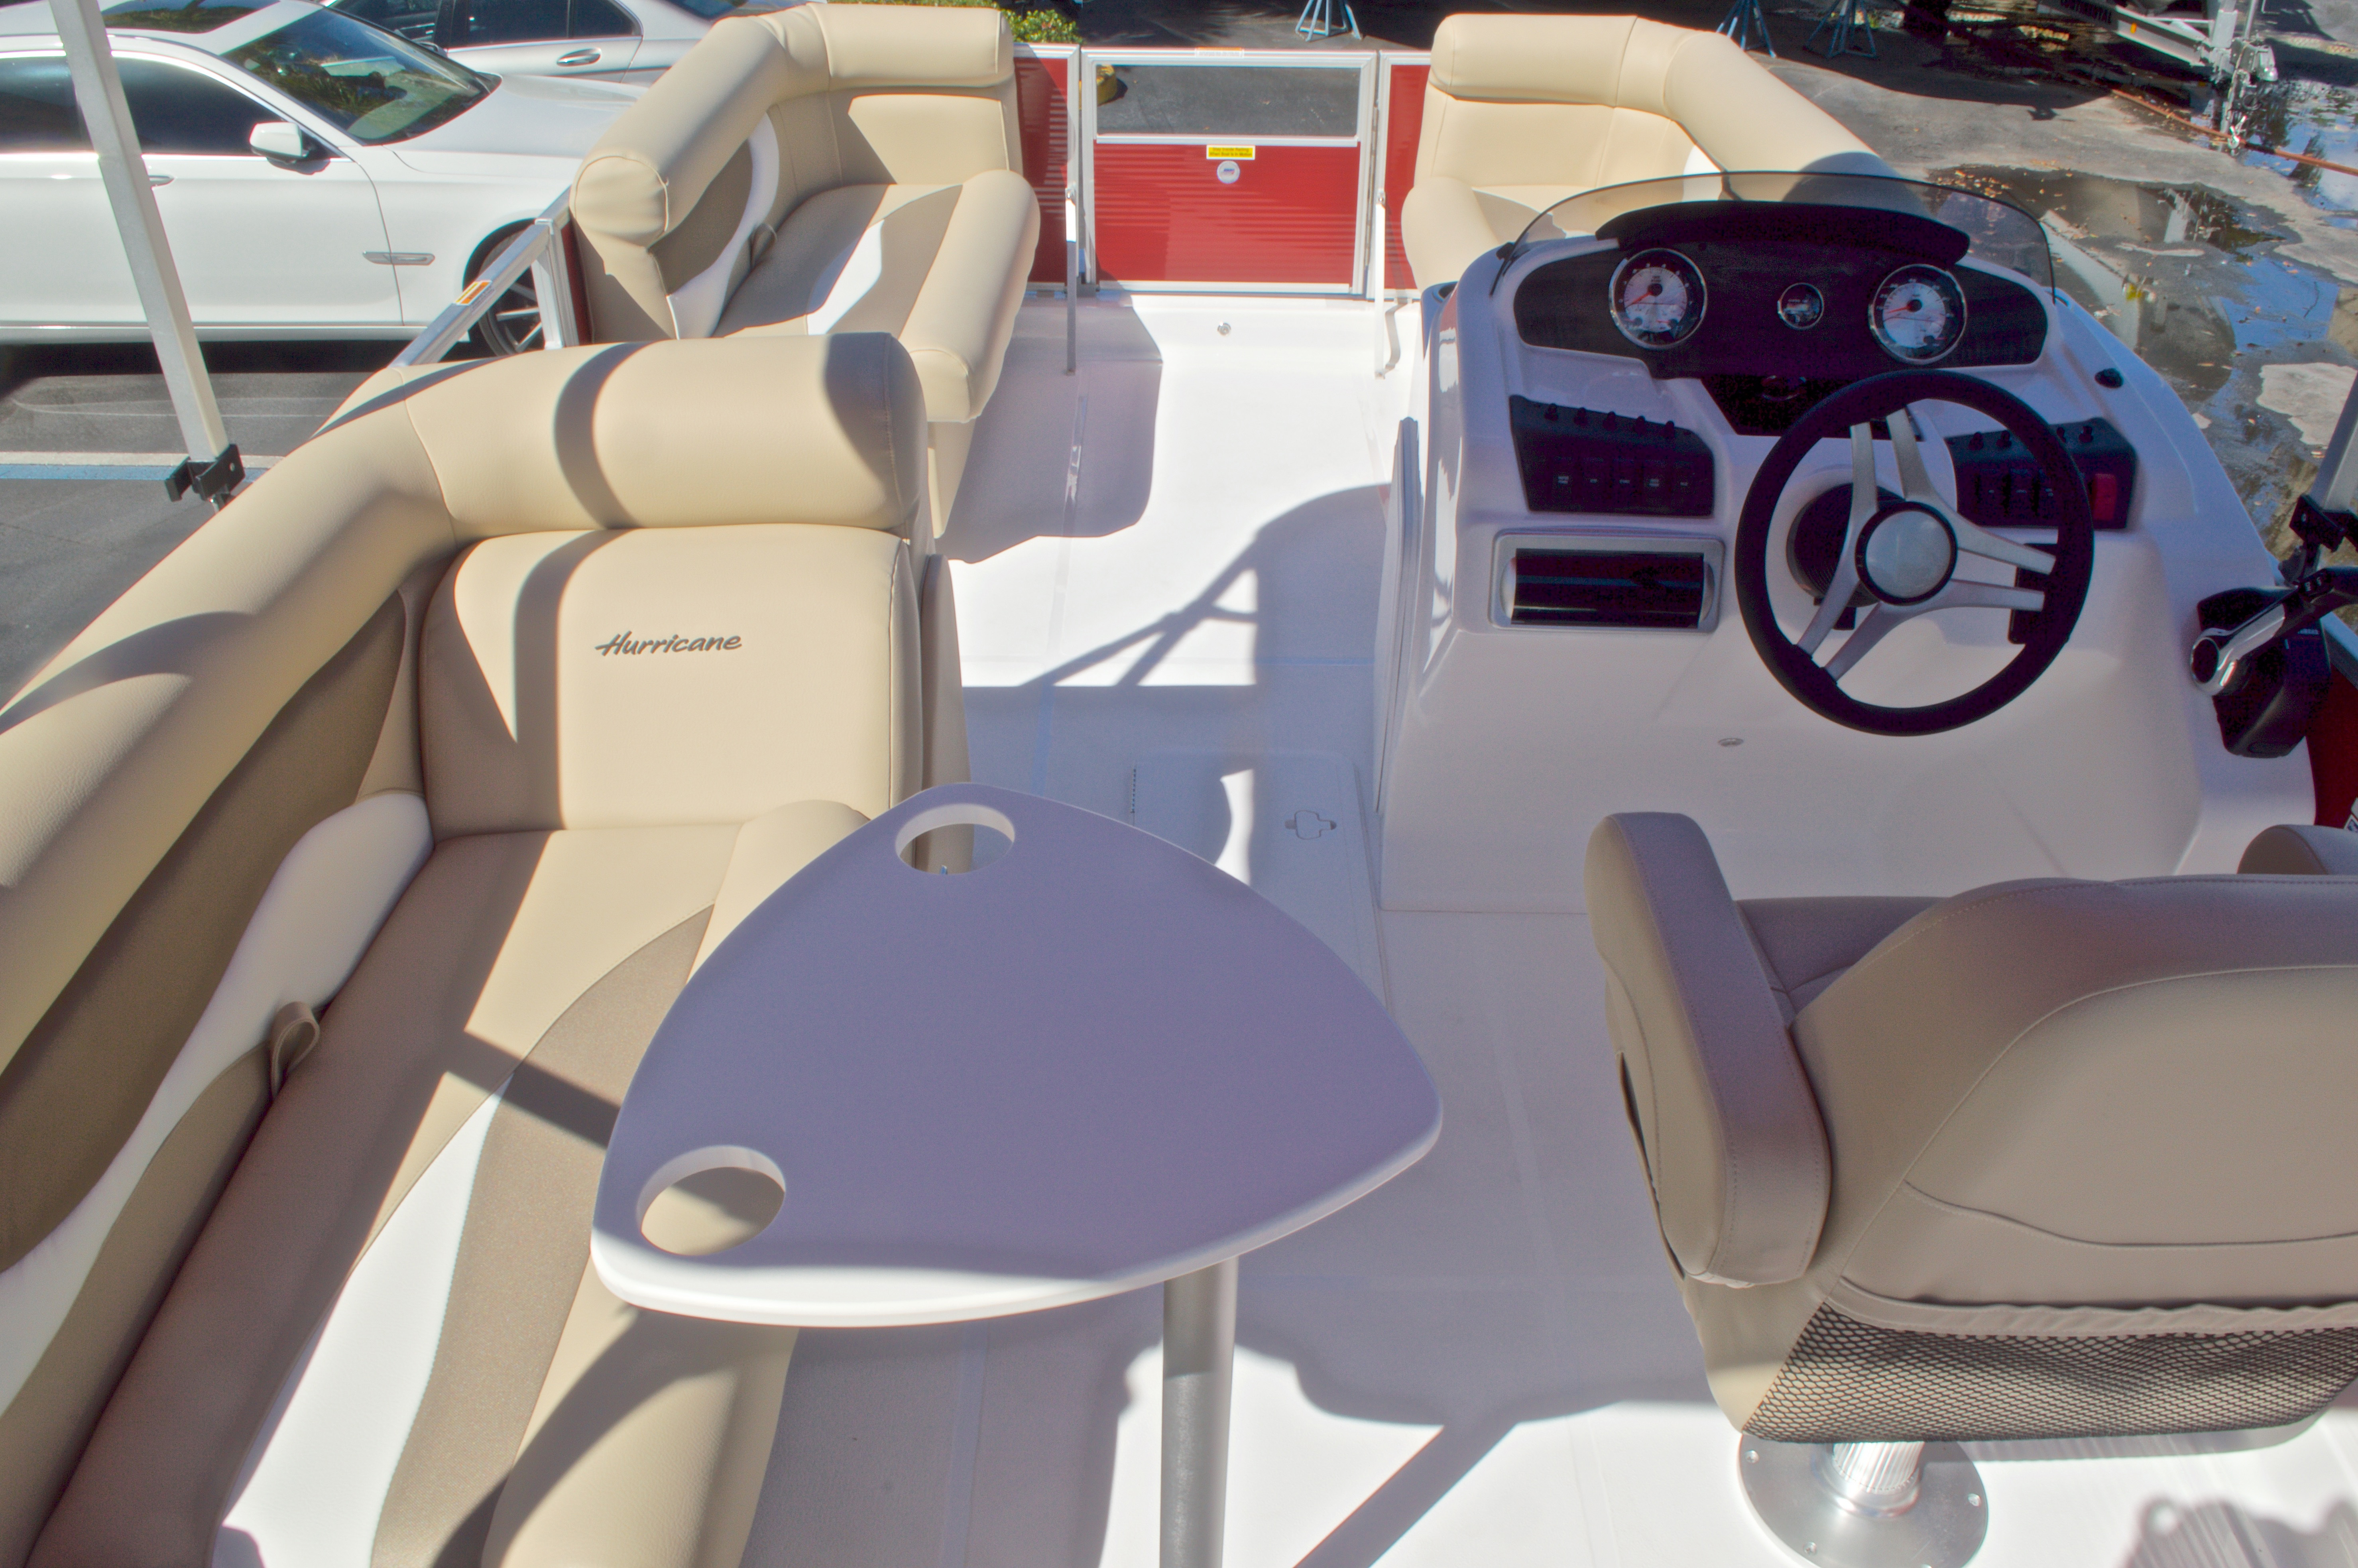 Thumbnail 19 for New 2016 Hurricane Fundeck FD 196 OB boat for sale in Vero Beach, FL